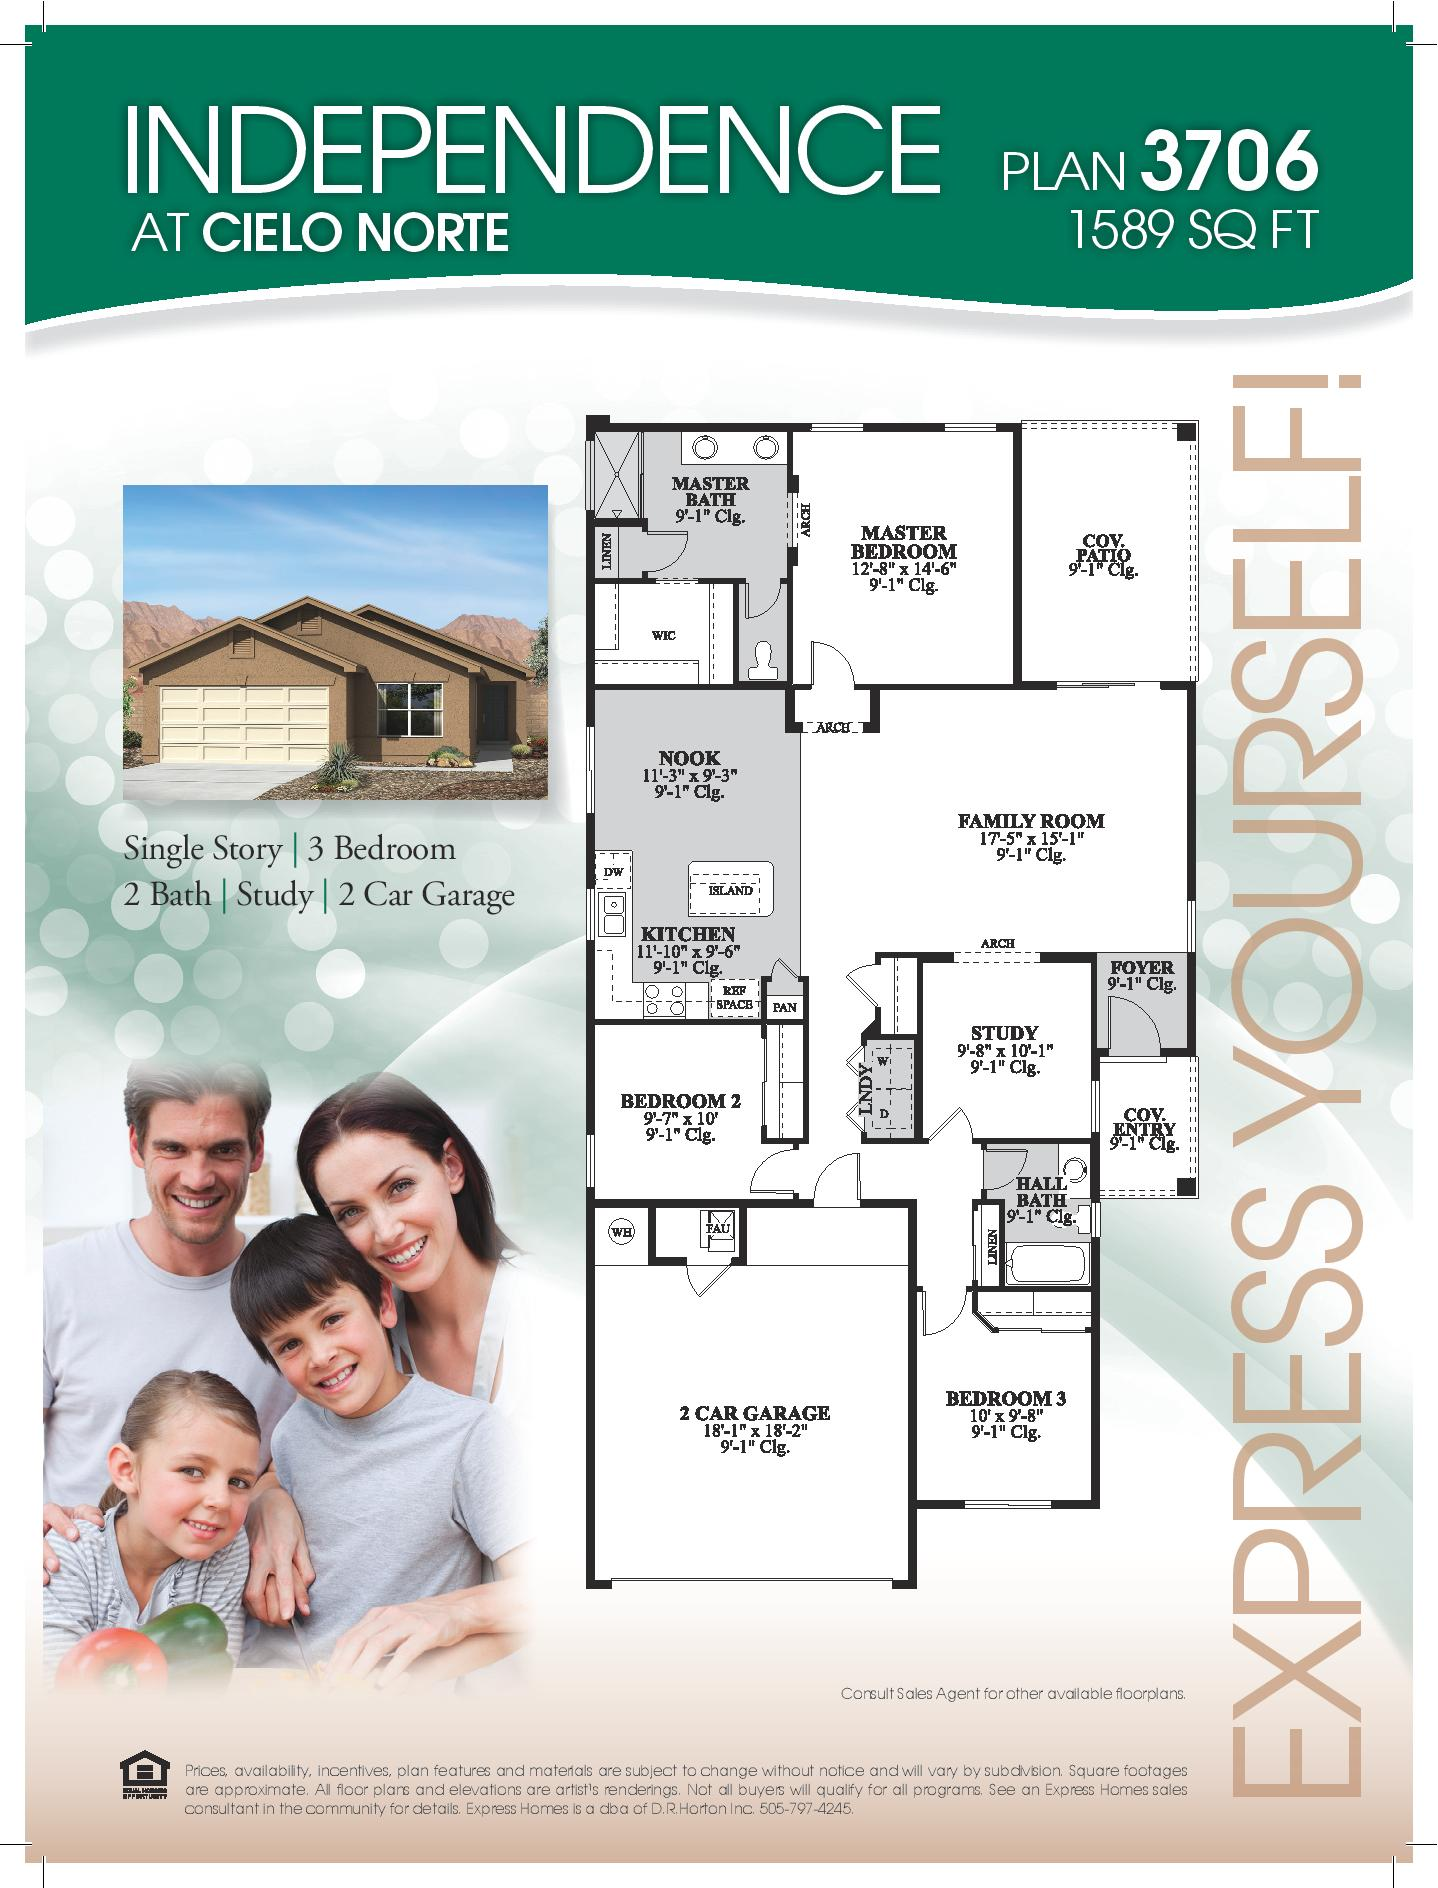 Express Homes Independence Floor Plan